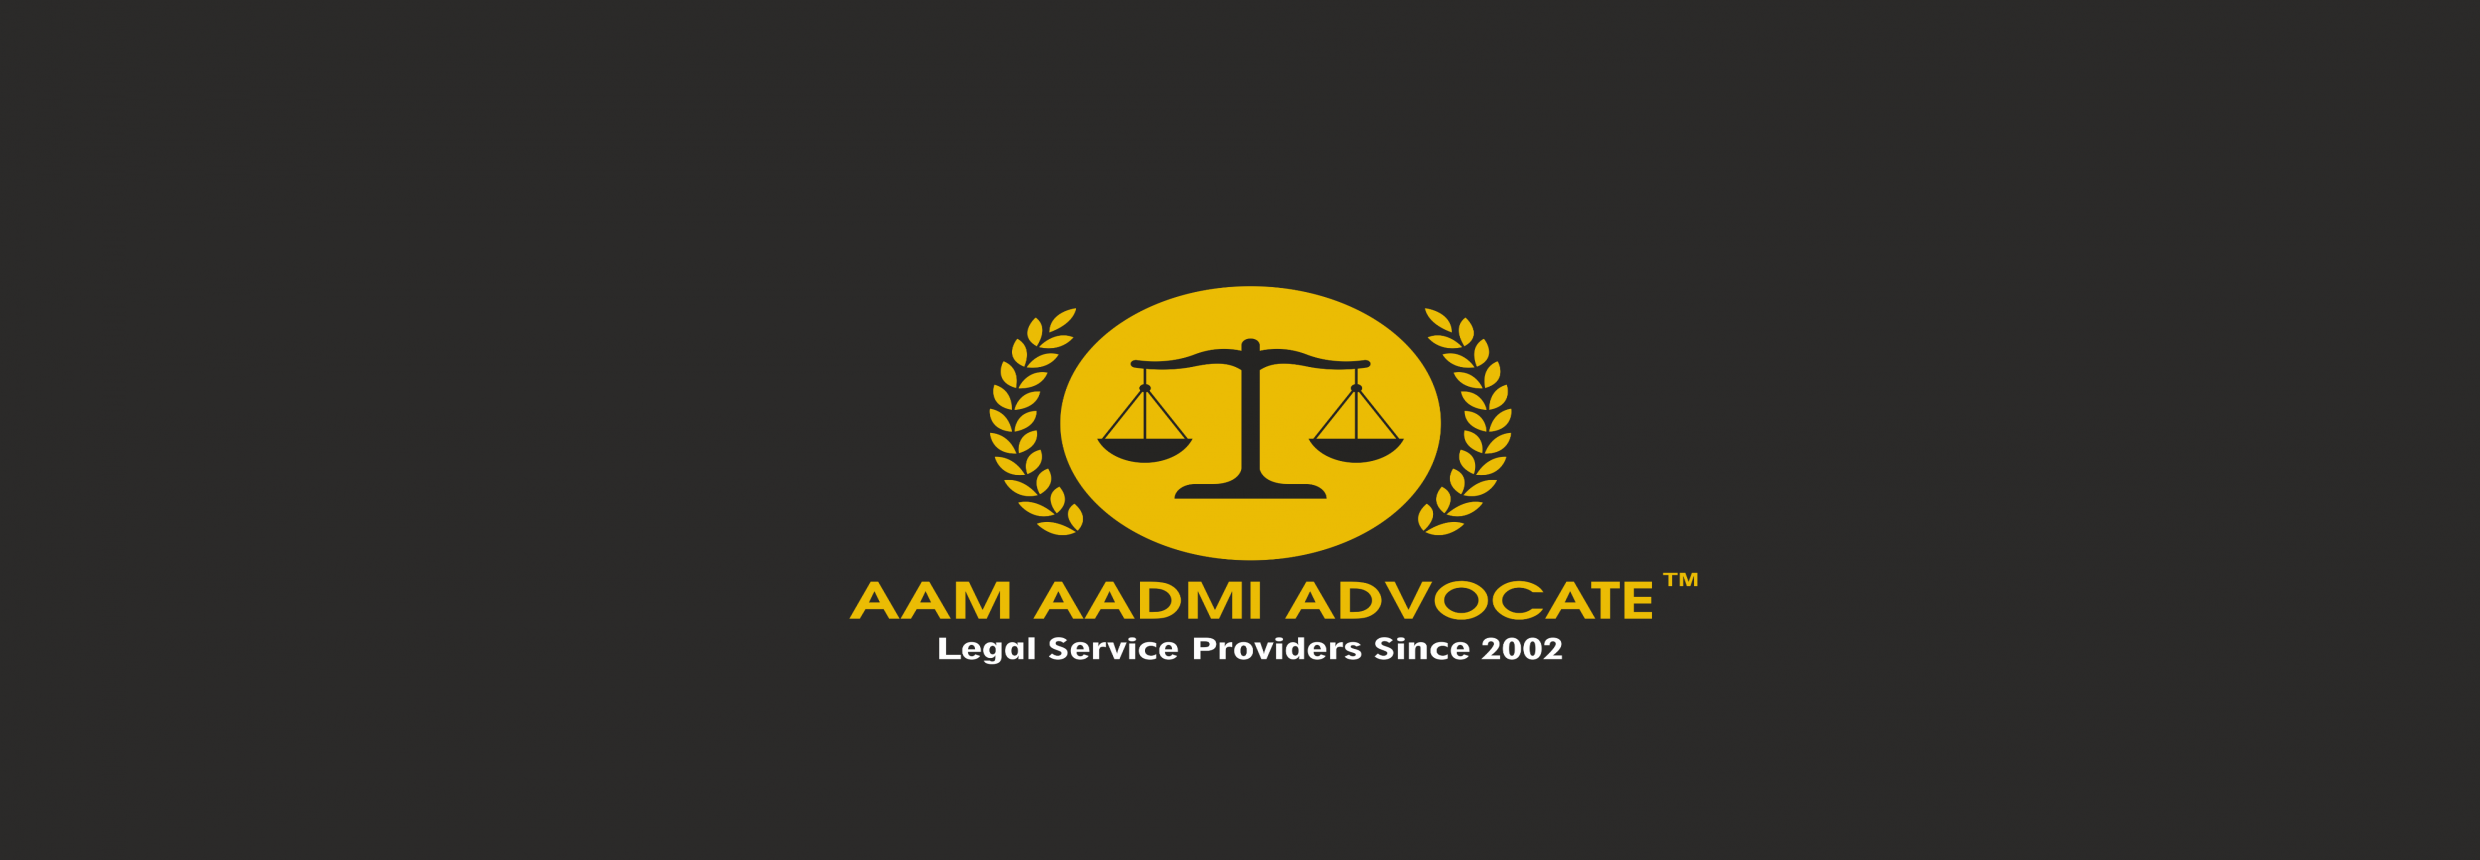 www.aamaadmiadvocate.com